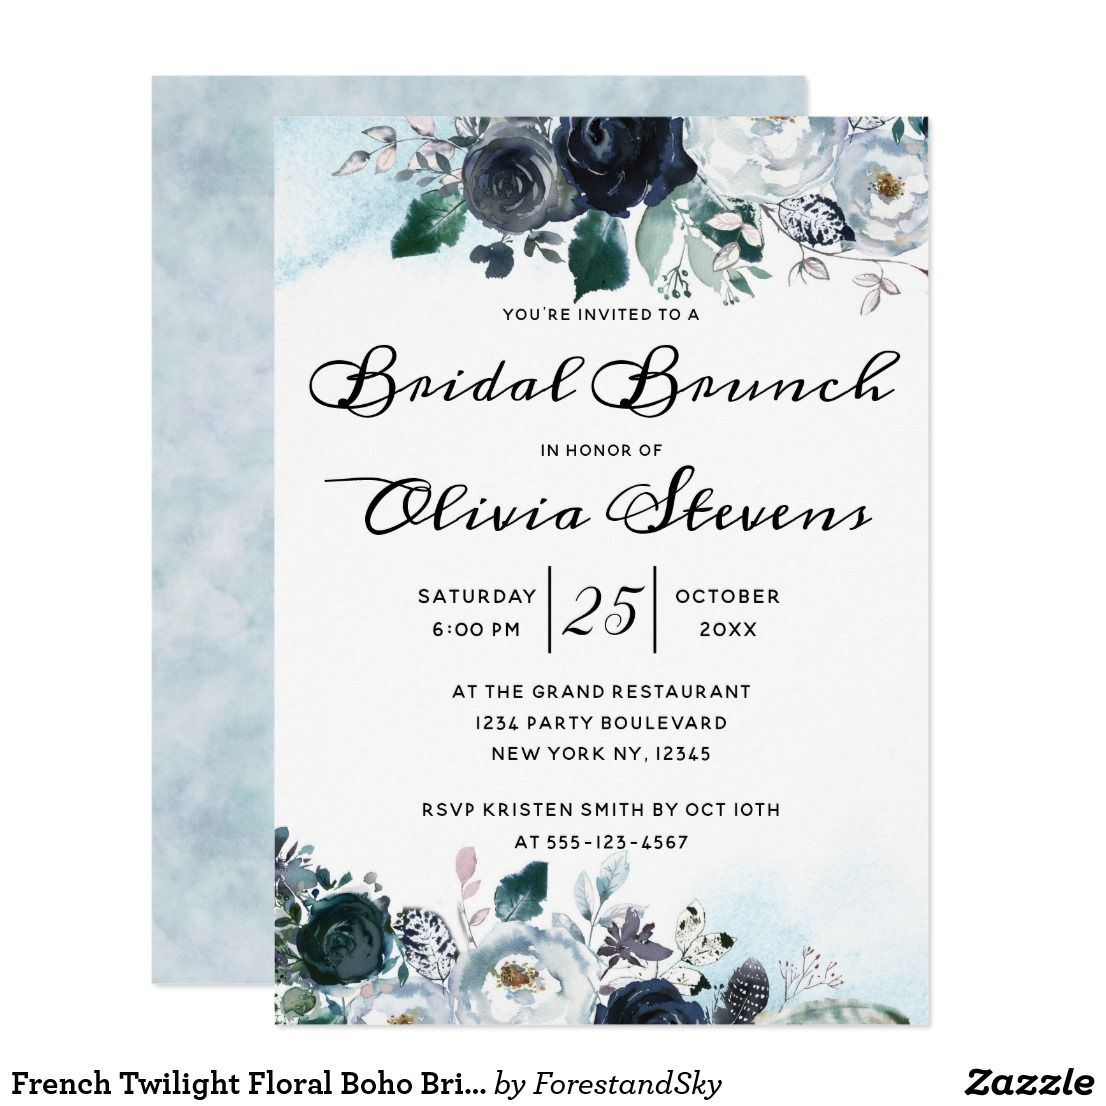 French Twilight Floral Boho Bridal Shower Brunch Invitation in